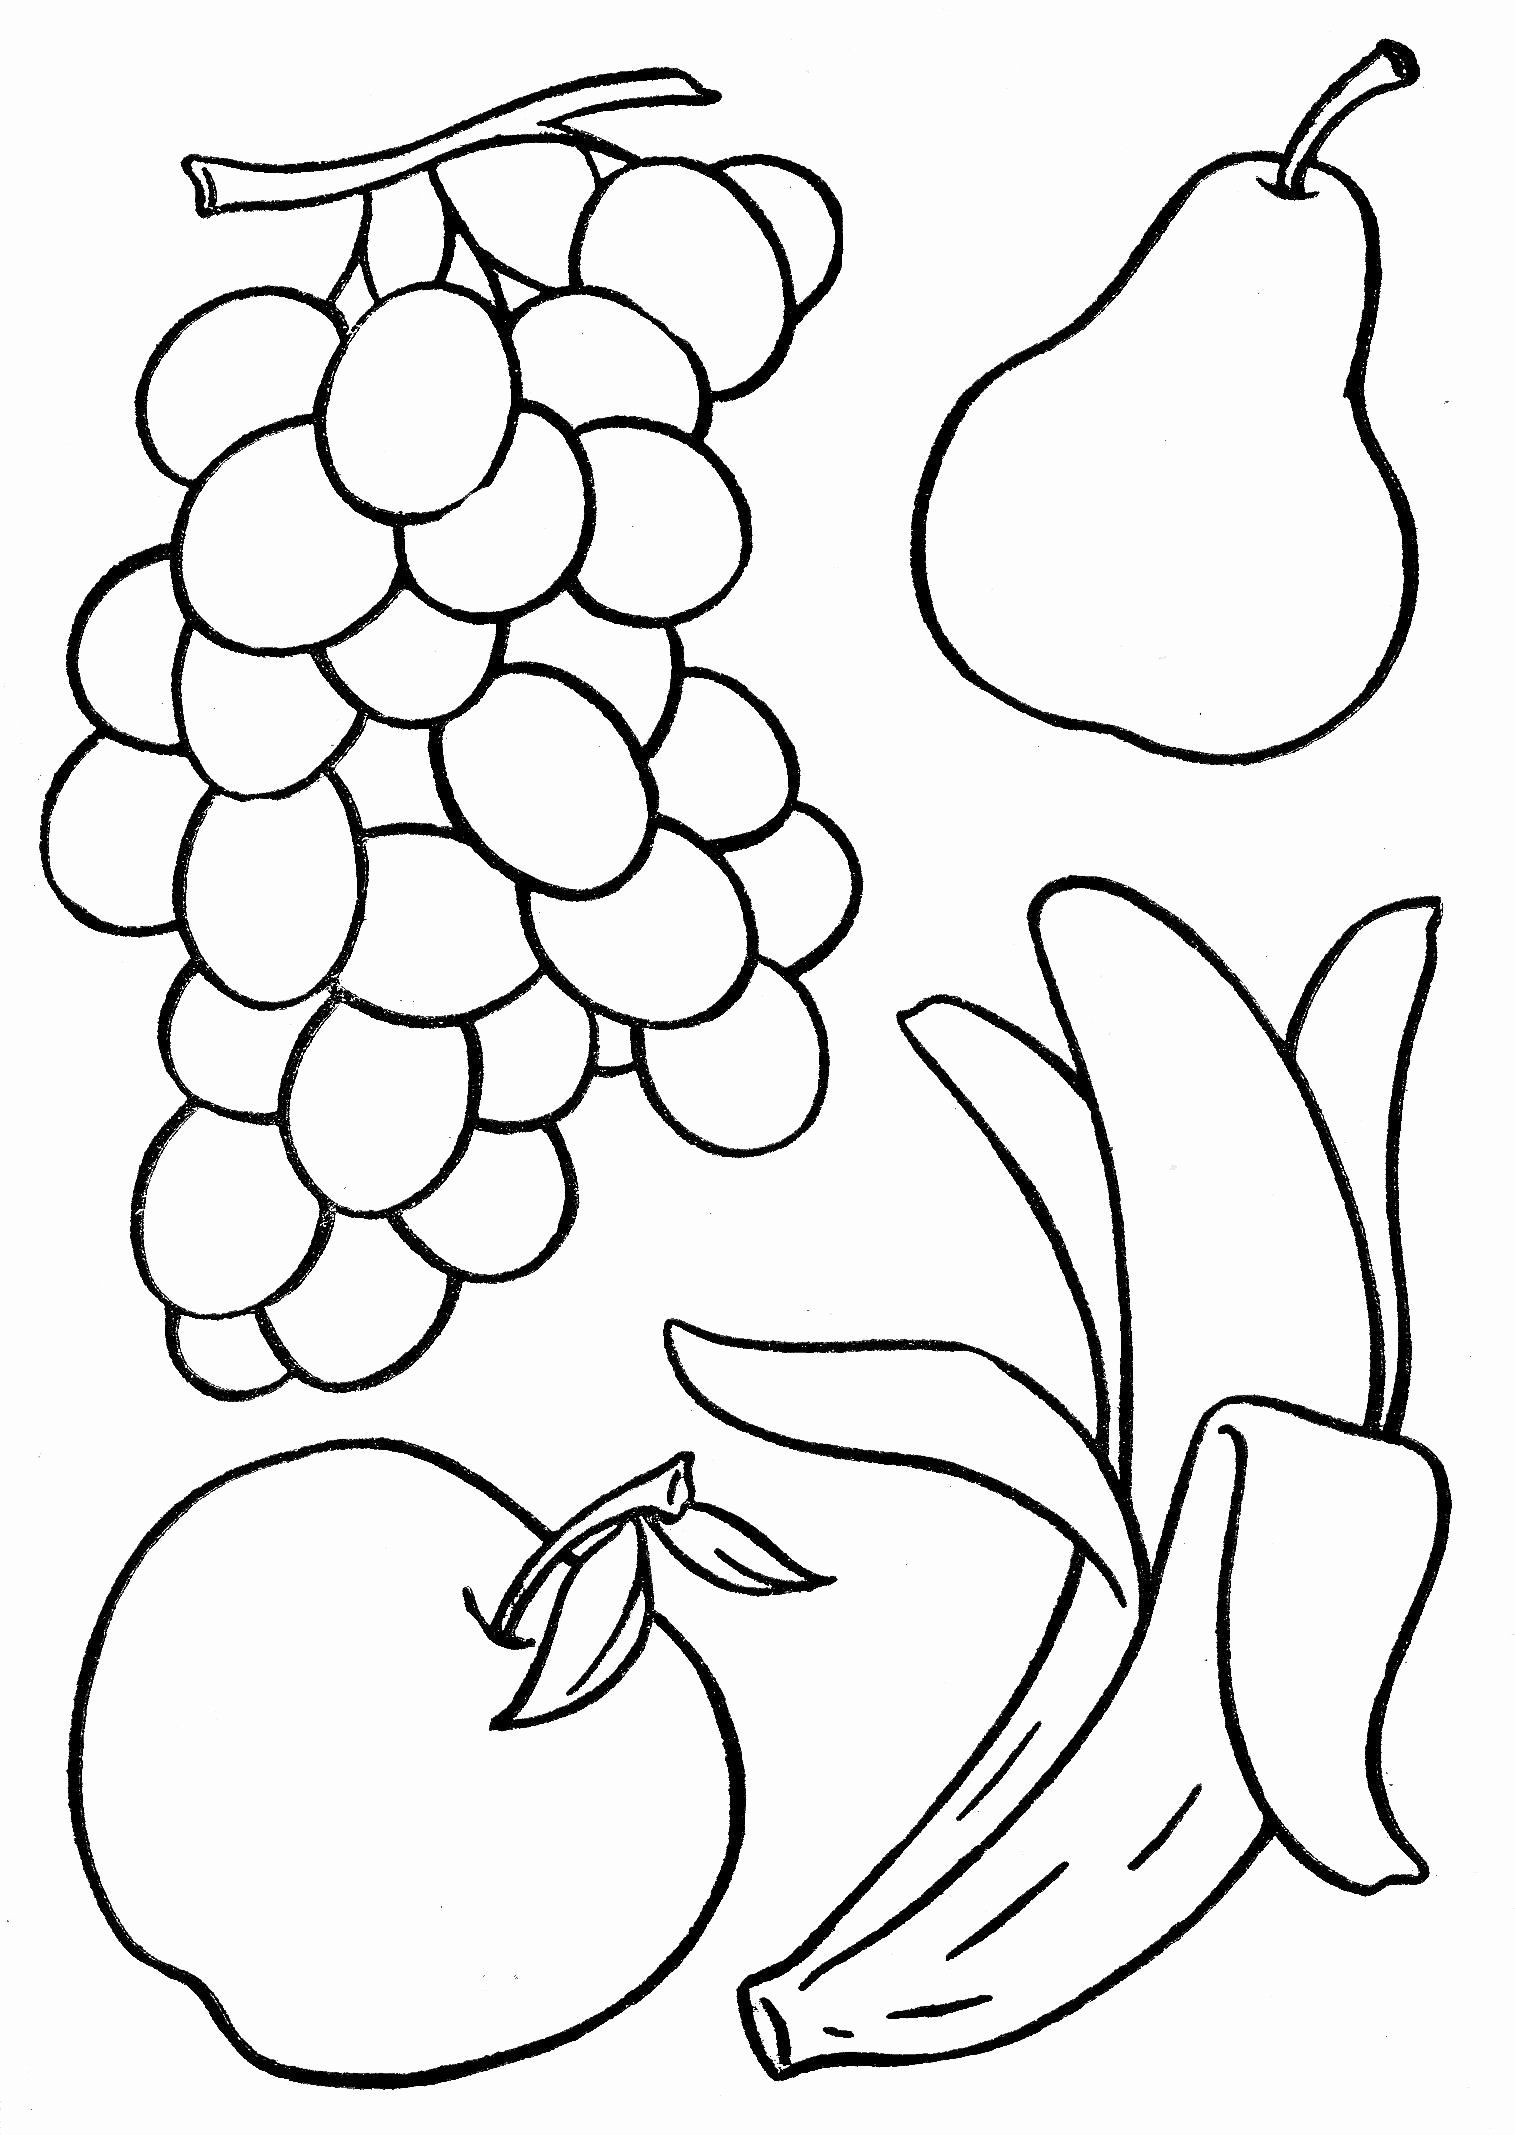 coloring printable fruits and vegetables fruits and vegetables coloring pages print coloring home fruits printable coloring vegetables and